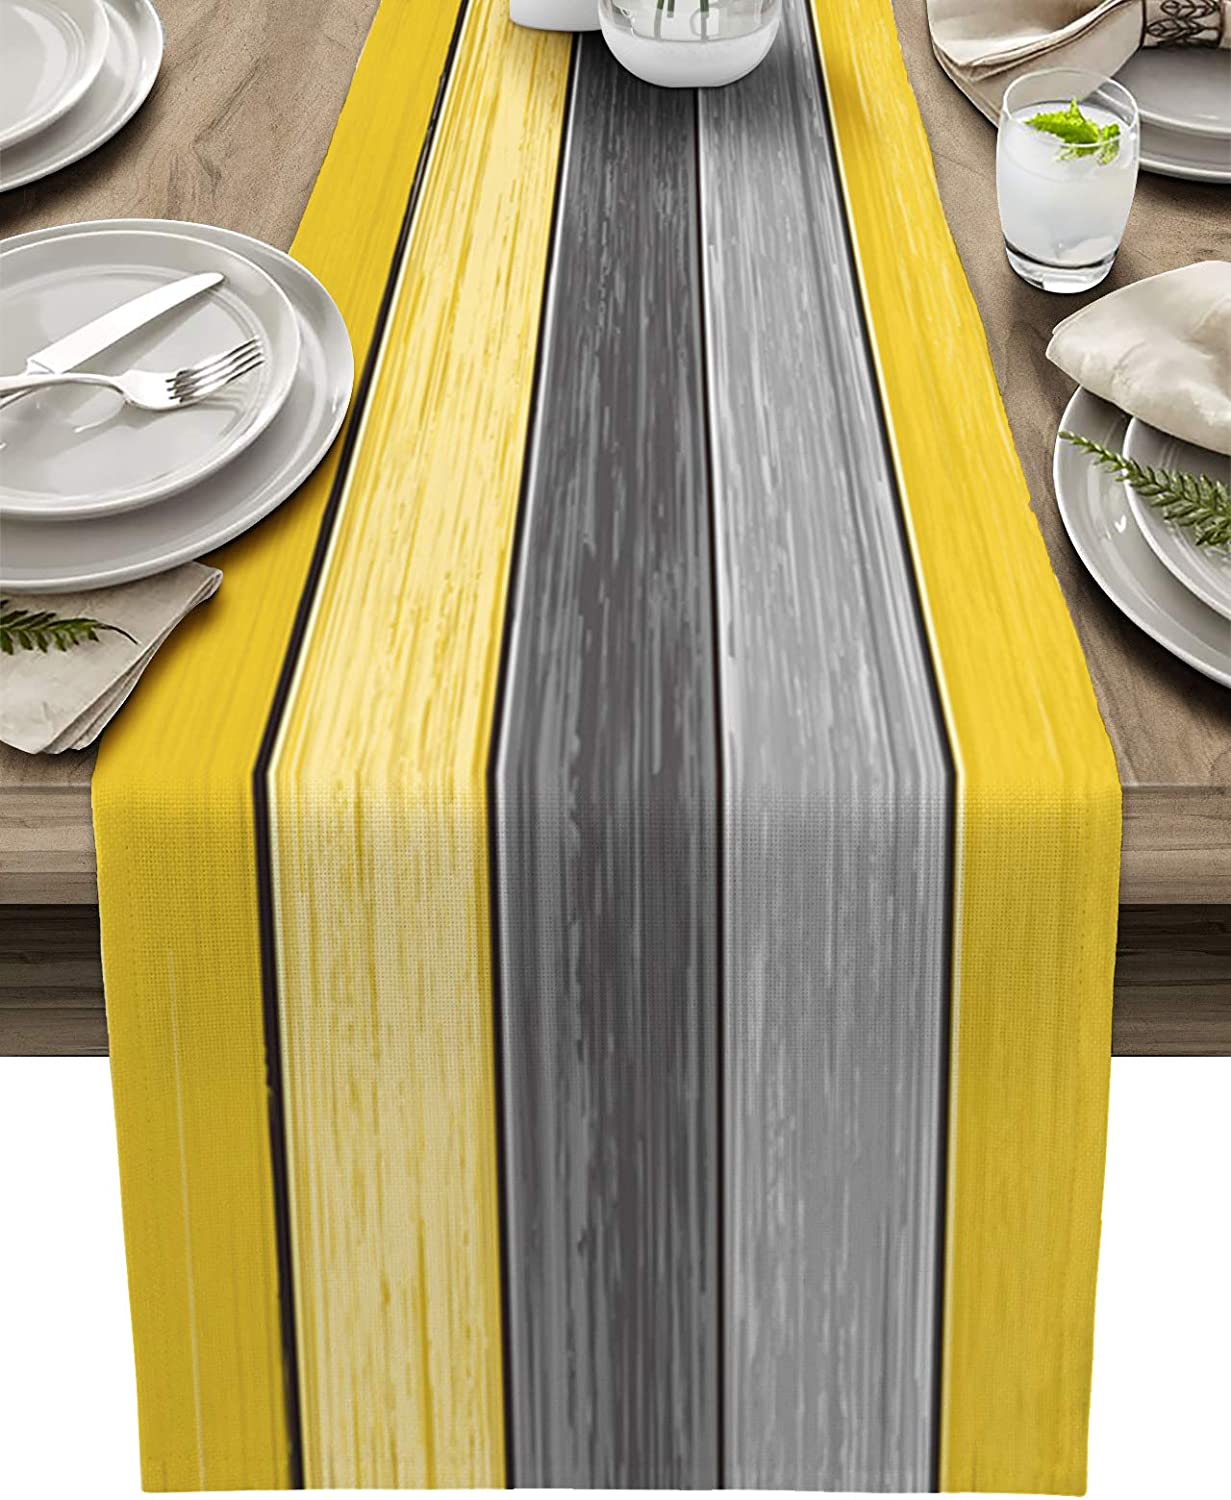 Farmhouse Cotton Linen Table Runner Dresser Scarf Extra Long 108 inches- Retro Rustic Barn Wood Texture Ombre Lemon Yellow and Gray Non-Slip Rectangle Settings Decor for Kitchen Home Dining Holiday